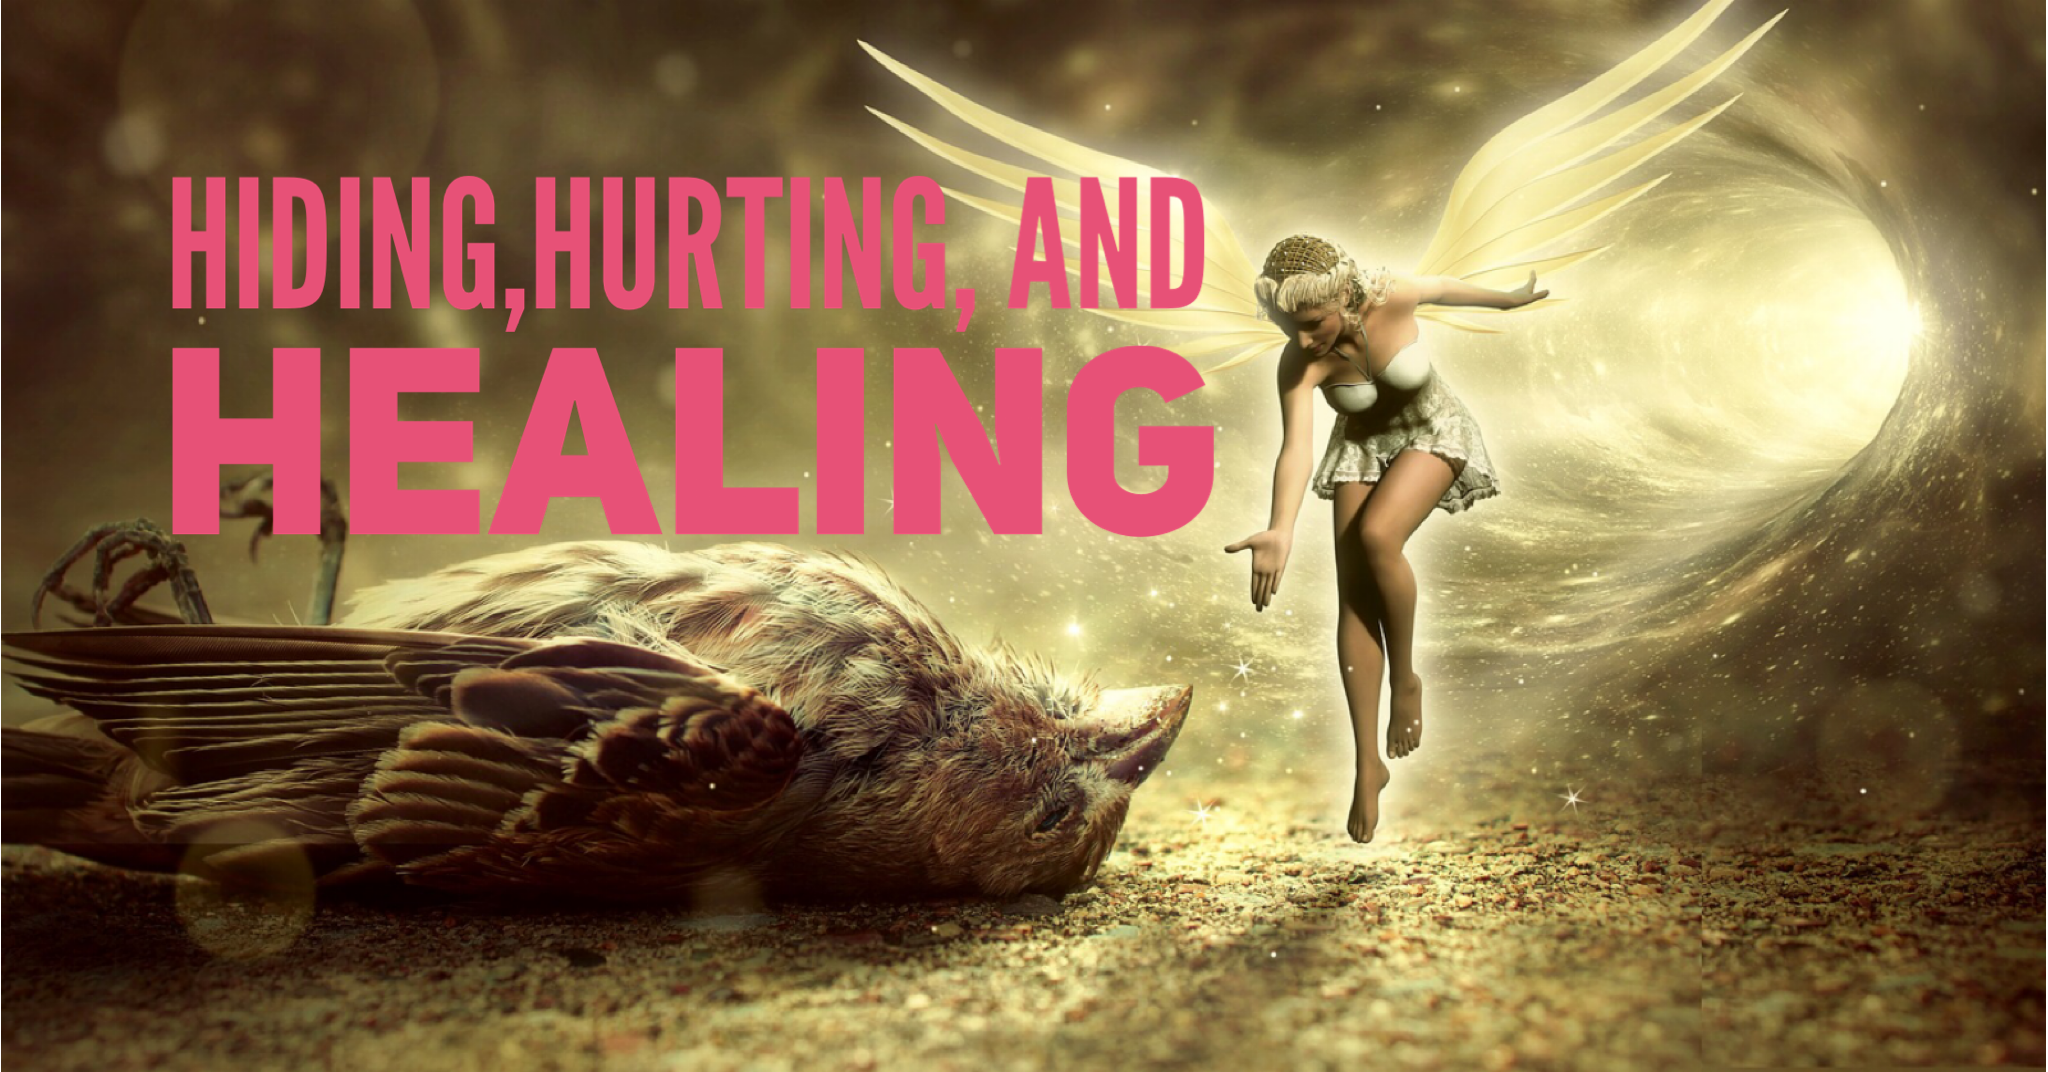 Hiding, Hurting, and Healing through Transformation